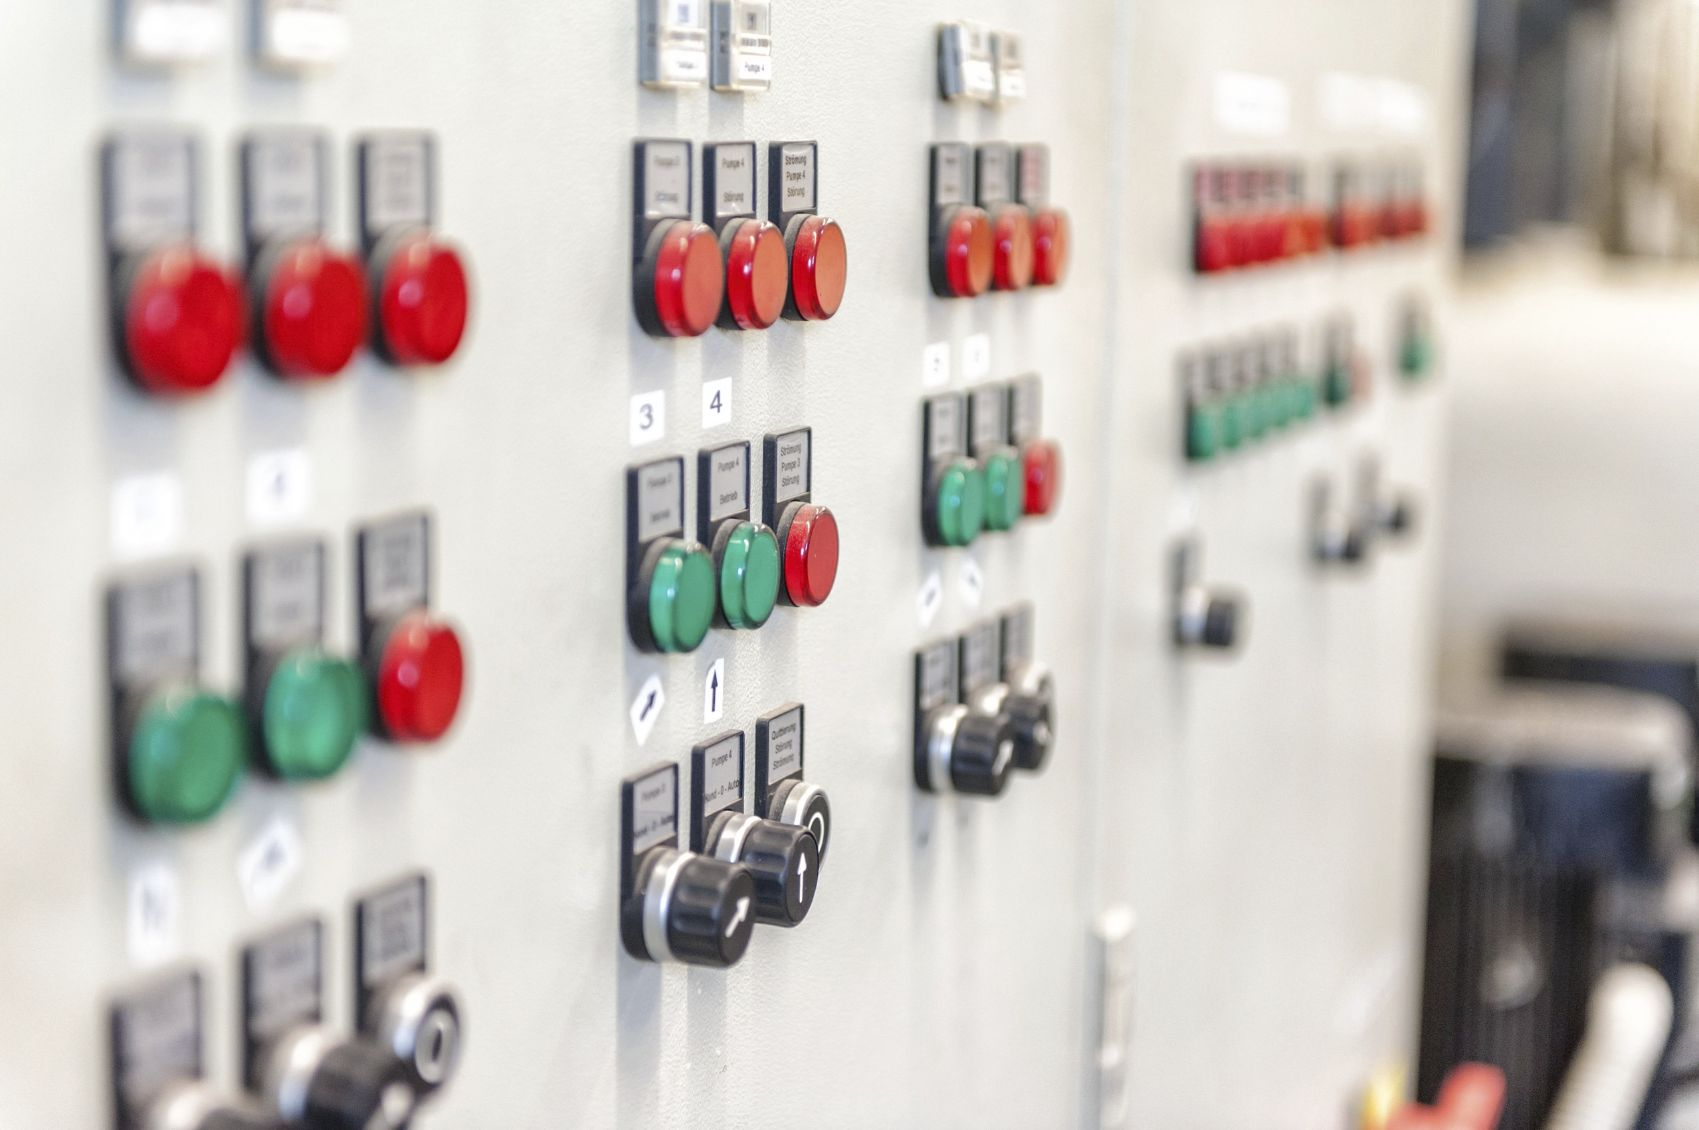 Electrical switchboard onboard unmanned machinery spaces